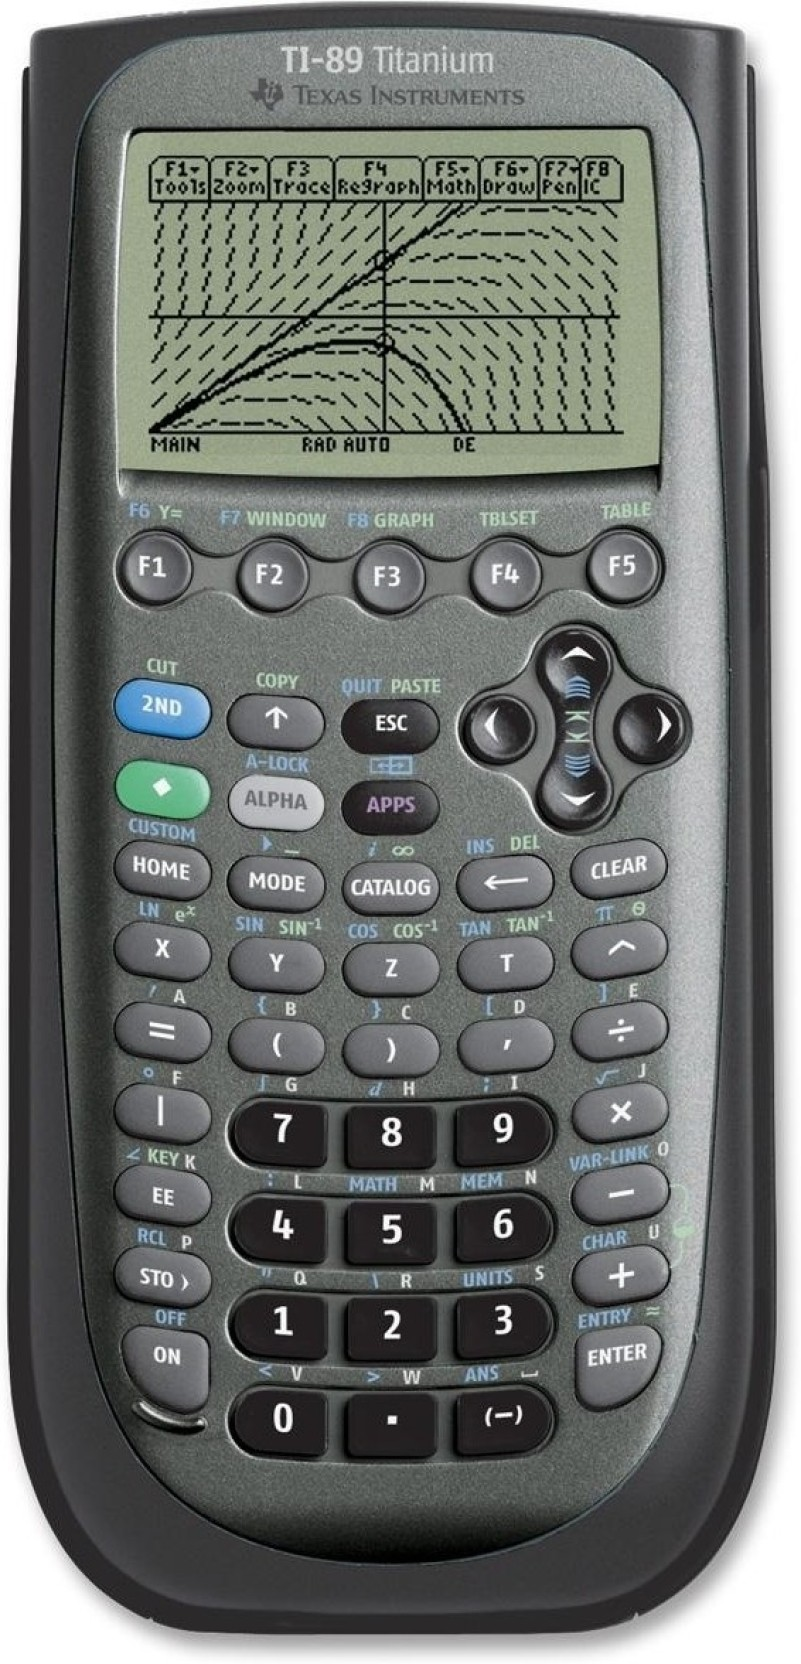 How To Calculate Standard Deviation On Ti 89 Texas Instruments Ti89  Titanium Graphical Calculator Add To